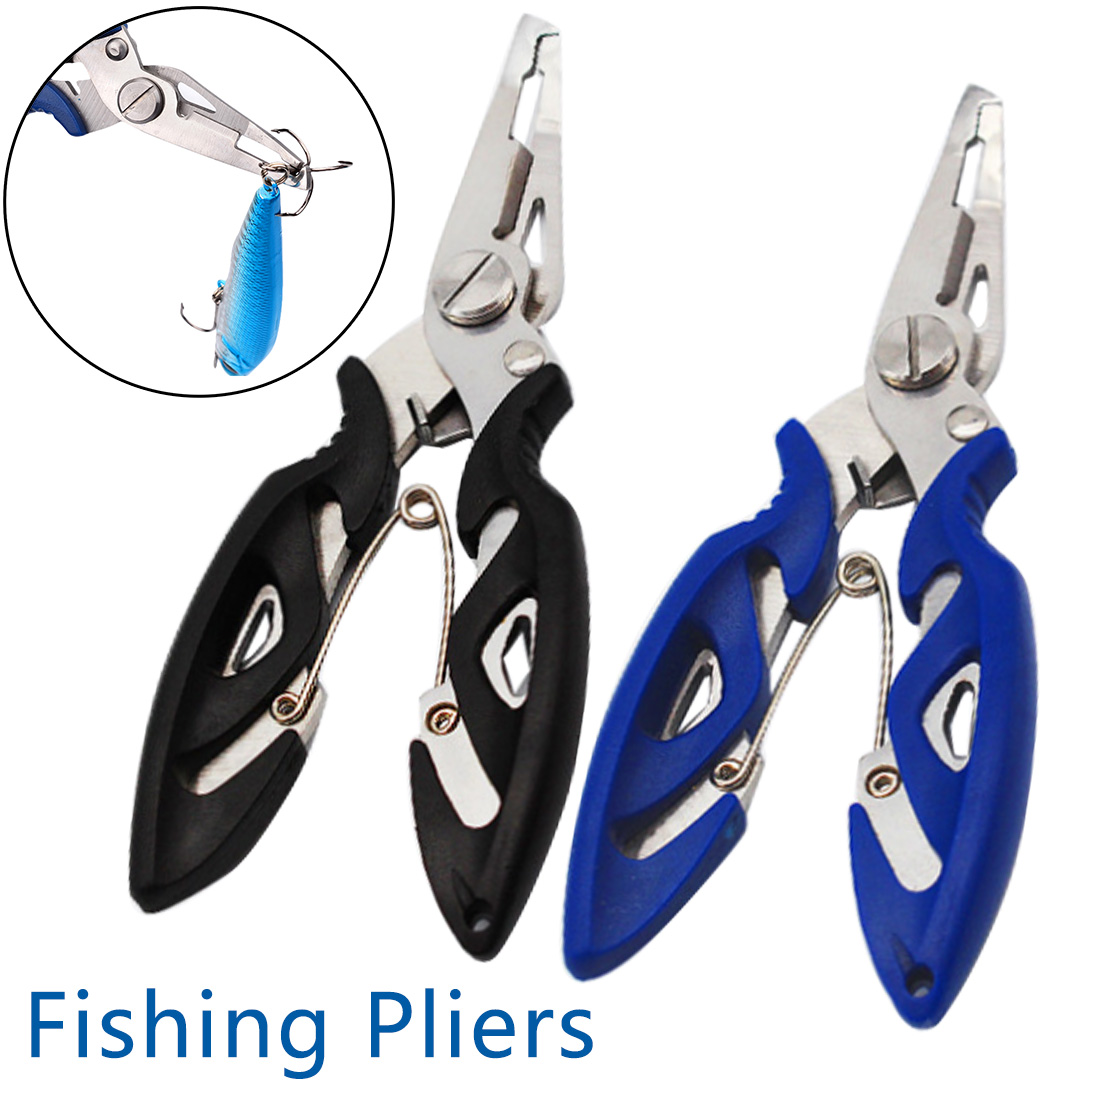 2019 Pro 1PC Durable Portable Multifunctional Stainless Steel Fishing Pliers Split Ring Scissors Wire Line Cutter Hook Removers